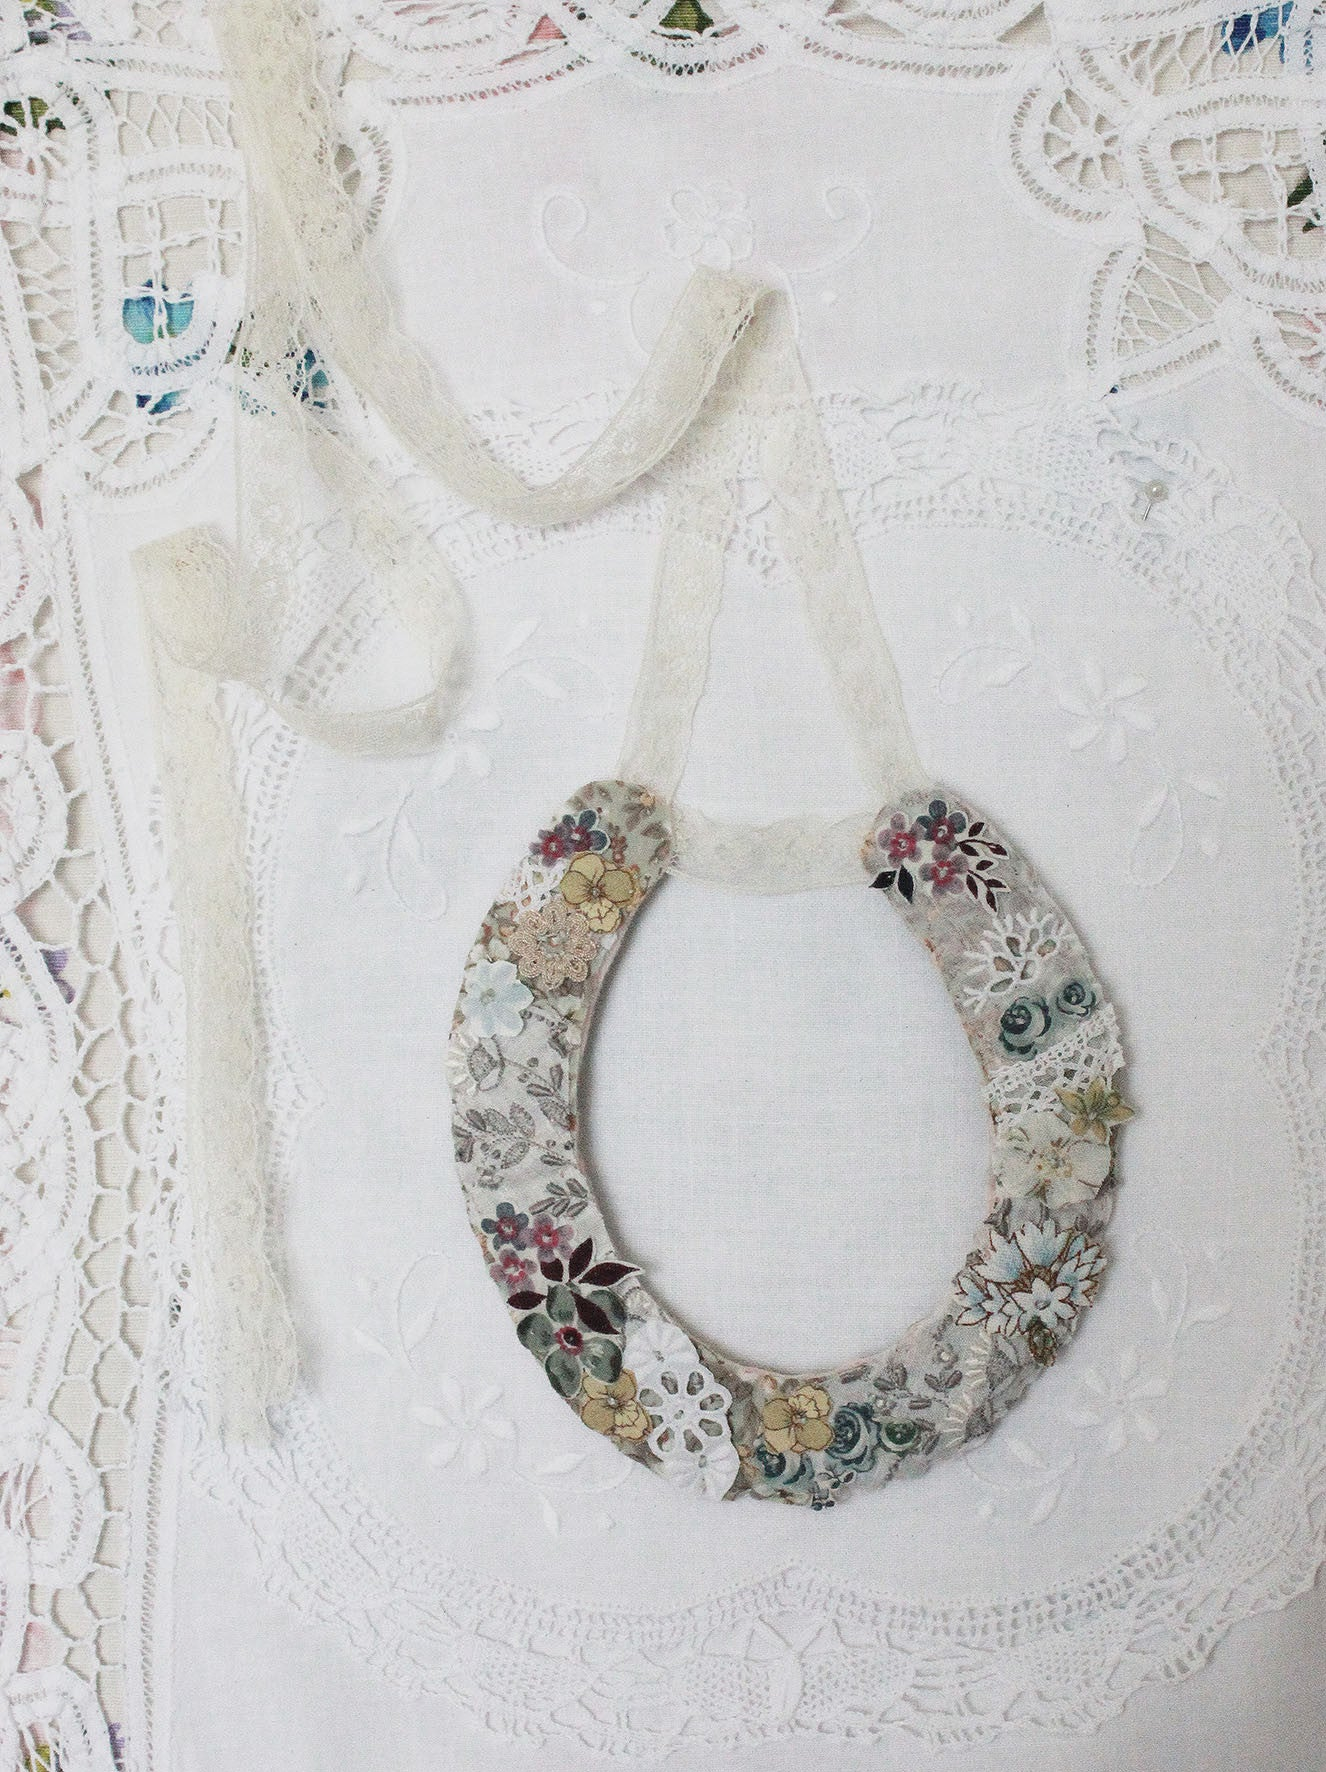 Linen Stationery ~ Pretty Wedding Horseshoe (hand-made 2.)